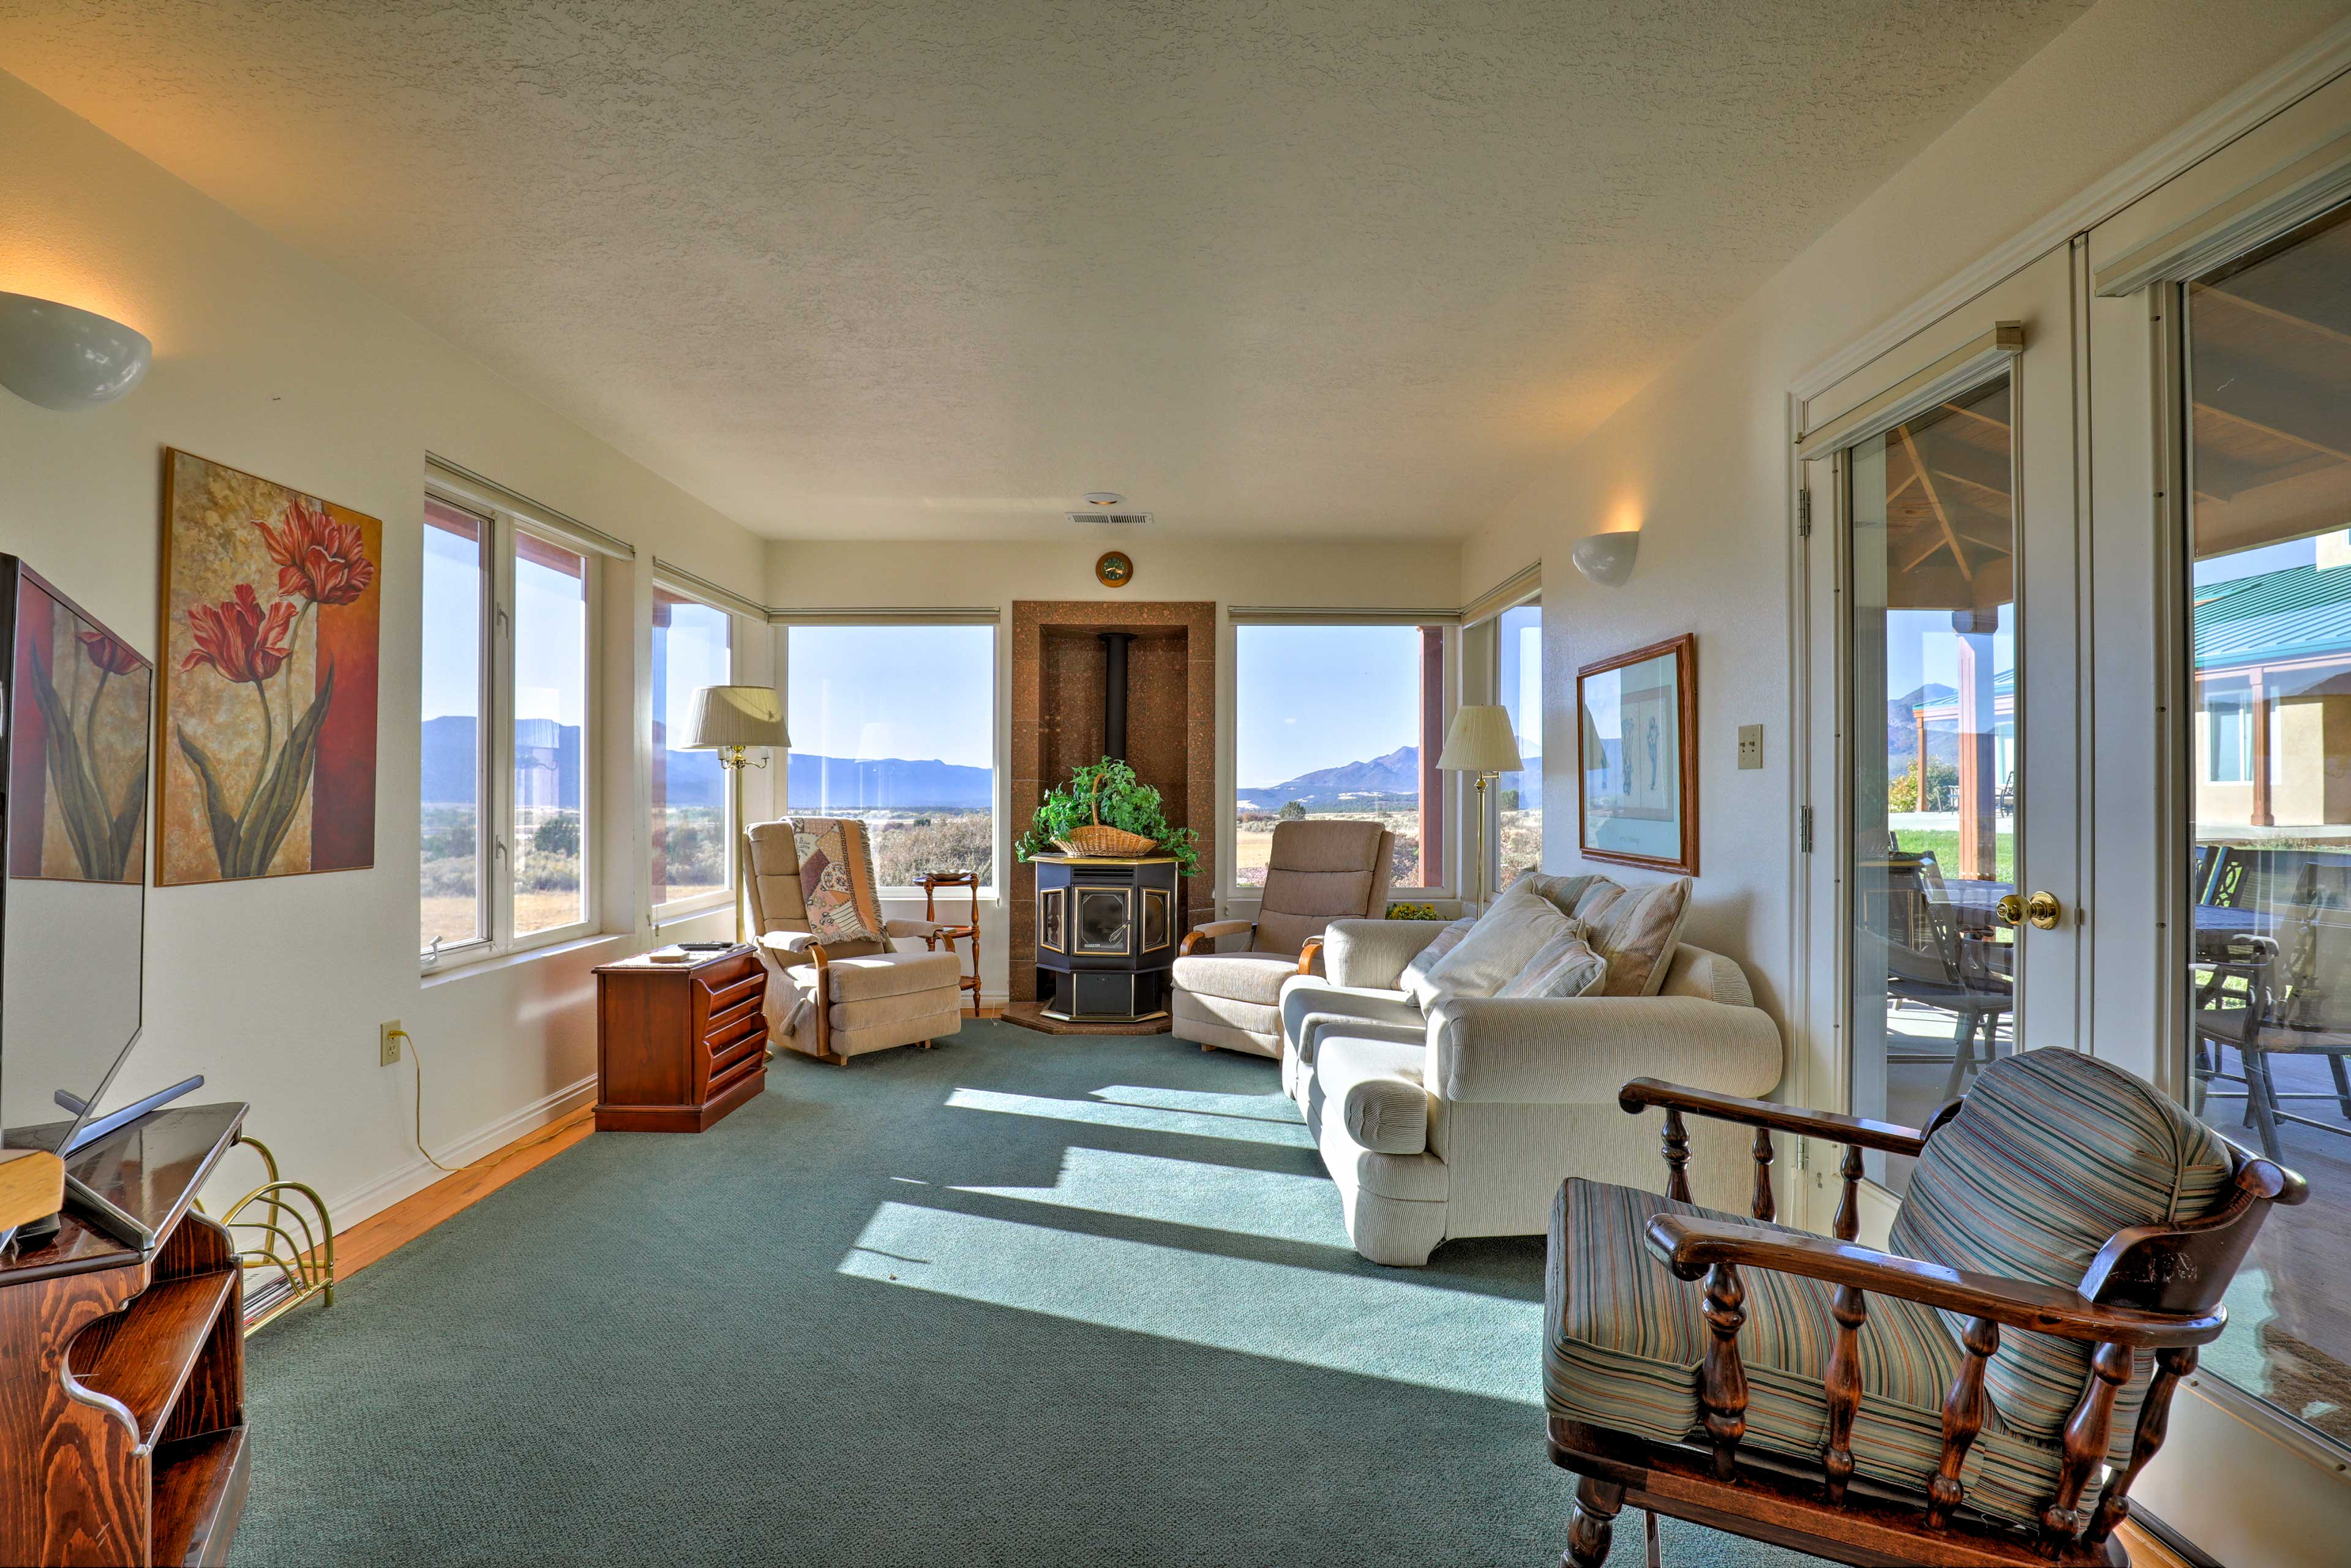 The cozy family room doubles as a sunroom with large picture windows.